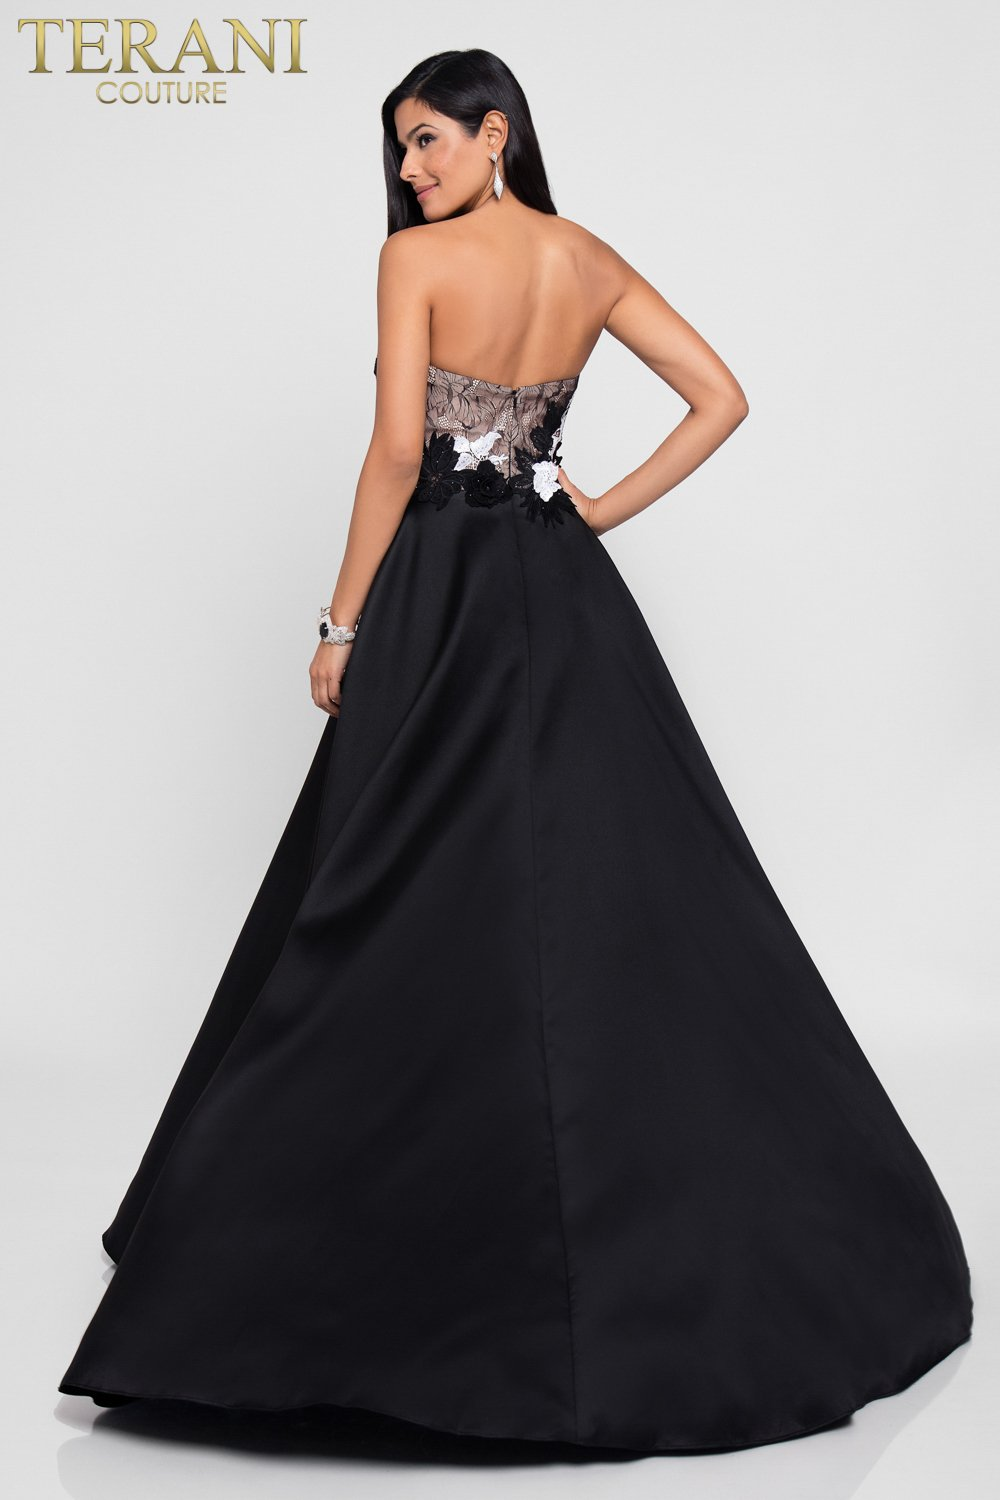 Elegant Black Strapless Ball Gown Prom Dress - 1815P5902